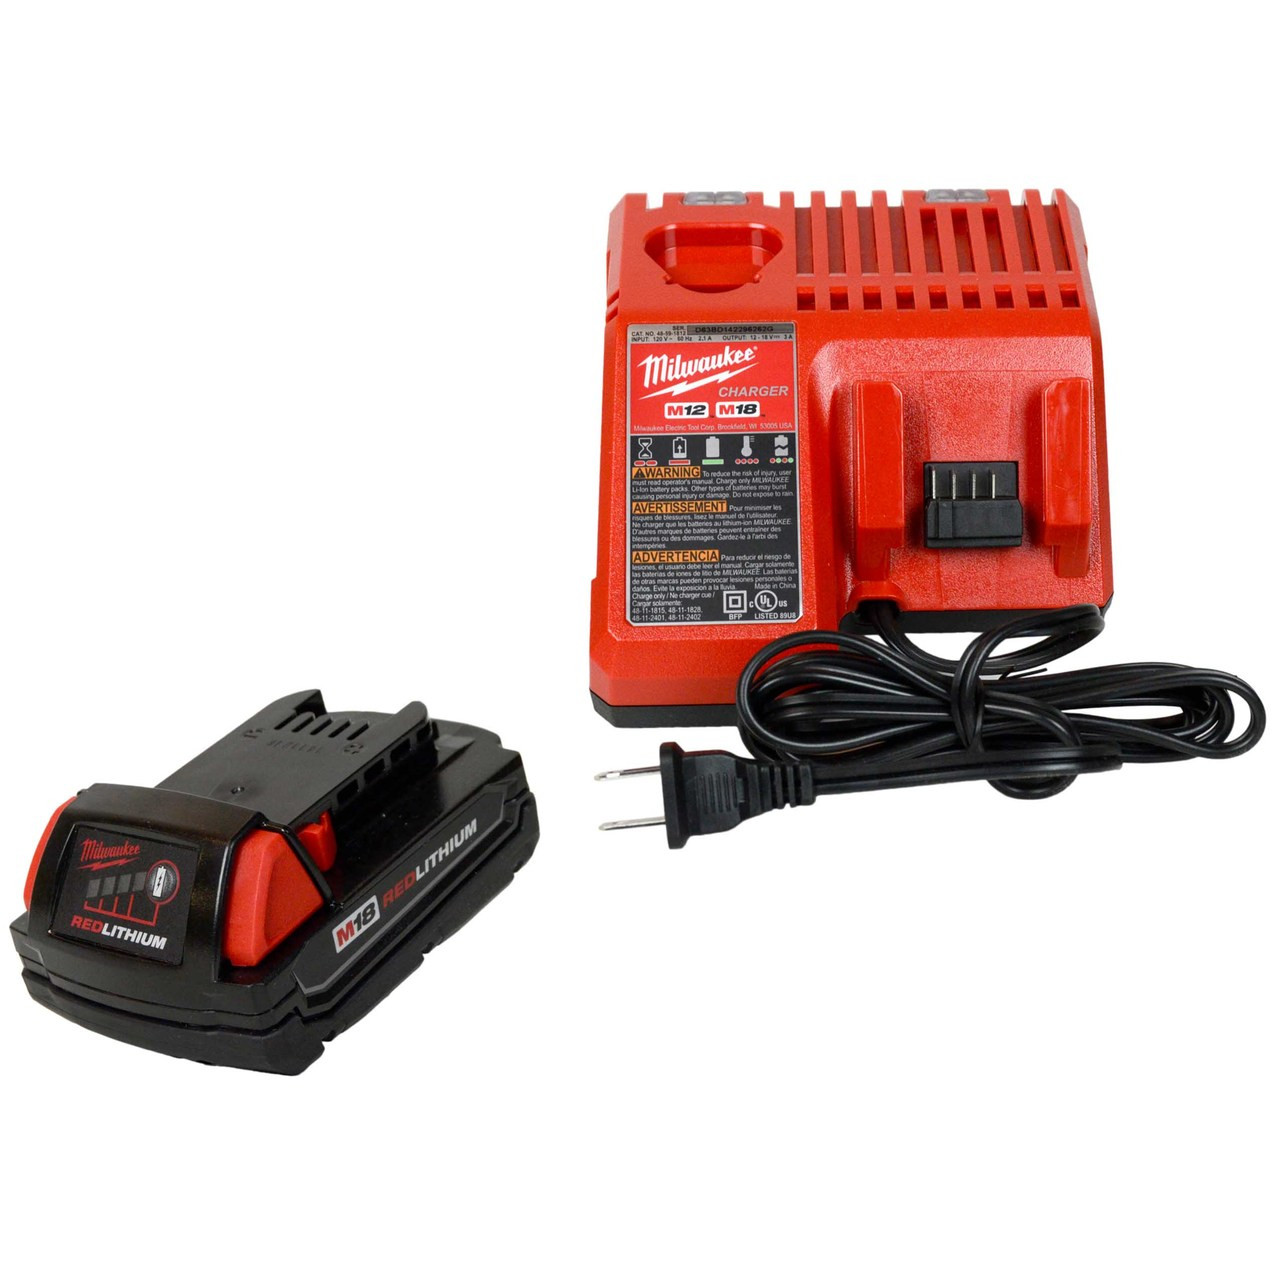 Milwaukee M18 Battery Milwaukee 48 59 1812 M12 M18 Battery Charger 1 48 11 1815 18v 1 5ah Battery